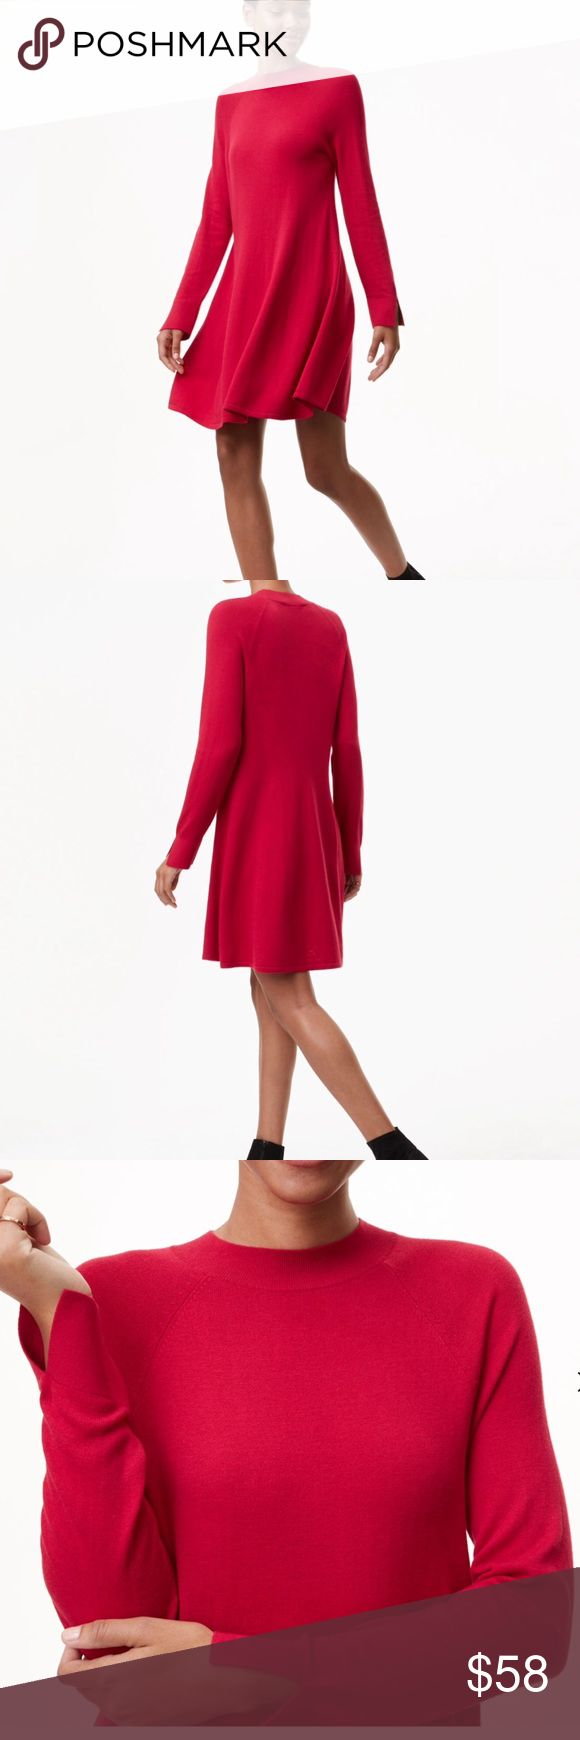 "LOFT💋Mock Neck Swing Sweater Dress 💋Stunning red sweater dress in a flirty swing style💋Long sleeves accented with split cuffs💋18"" long from the waist   **40% polyester**35% viscose**25% wool**                   Machine Washable LOFT Dresses"